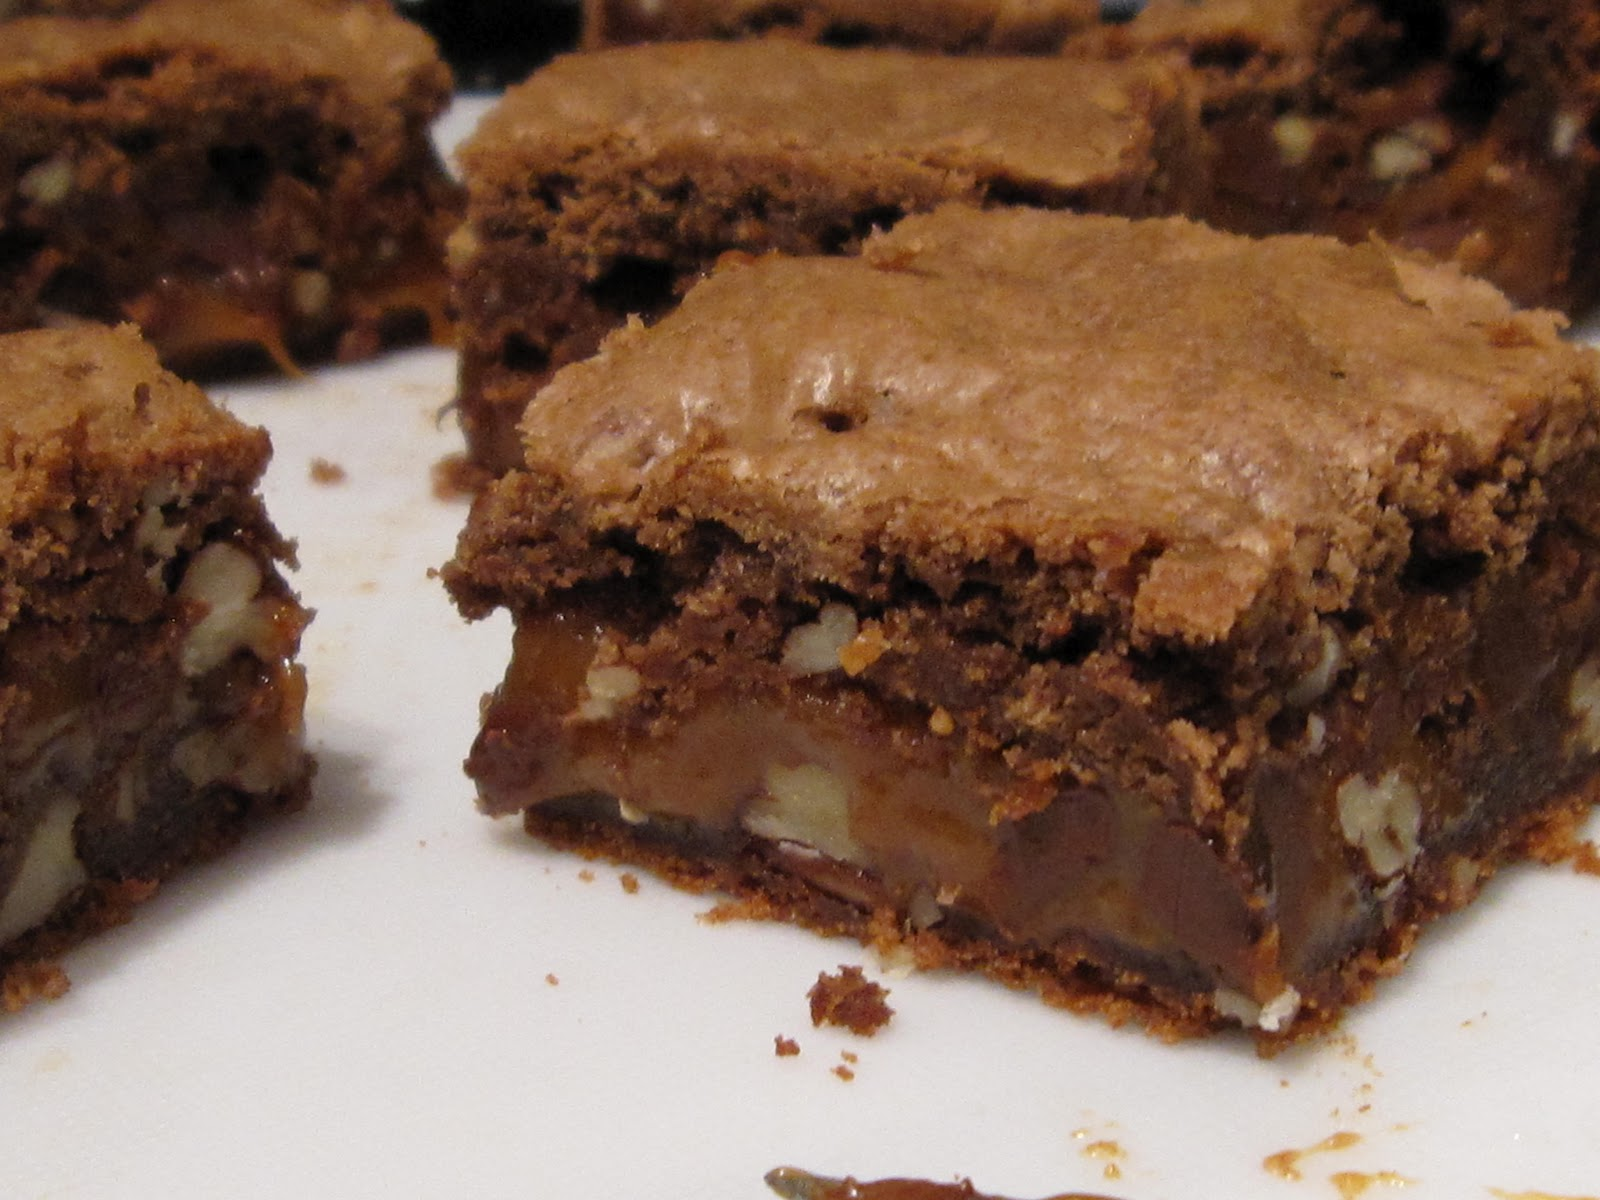 HANNAH IN THE KITCHEN: Gooey Caramel Pecan Brownies